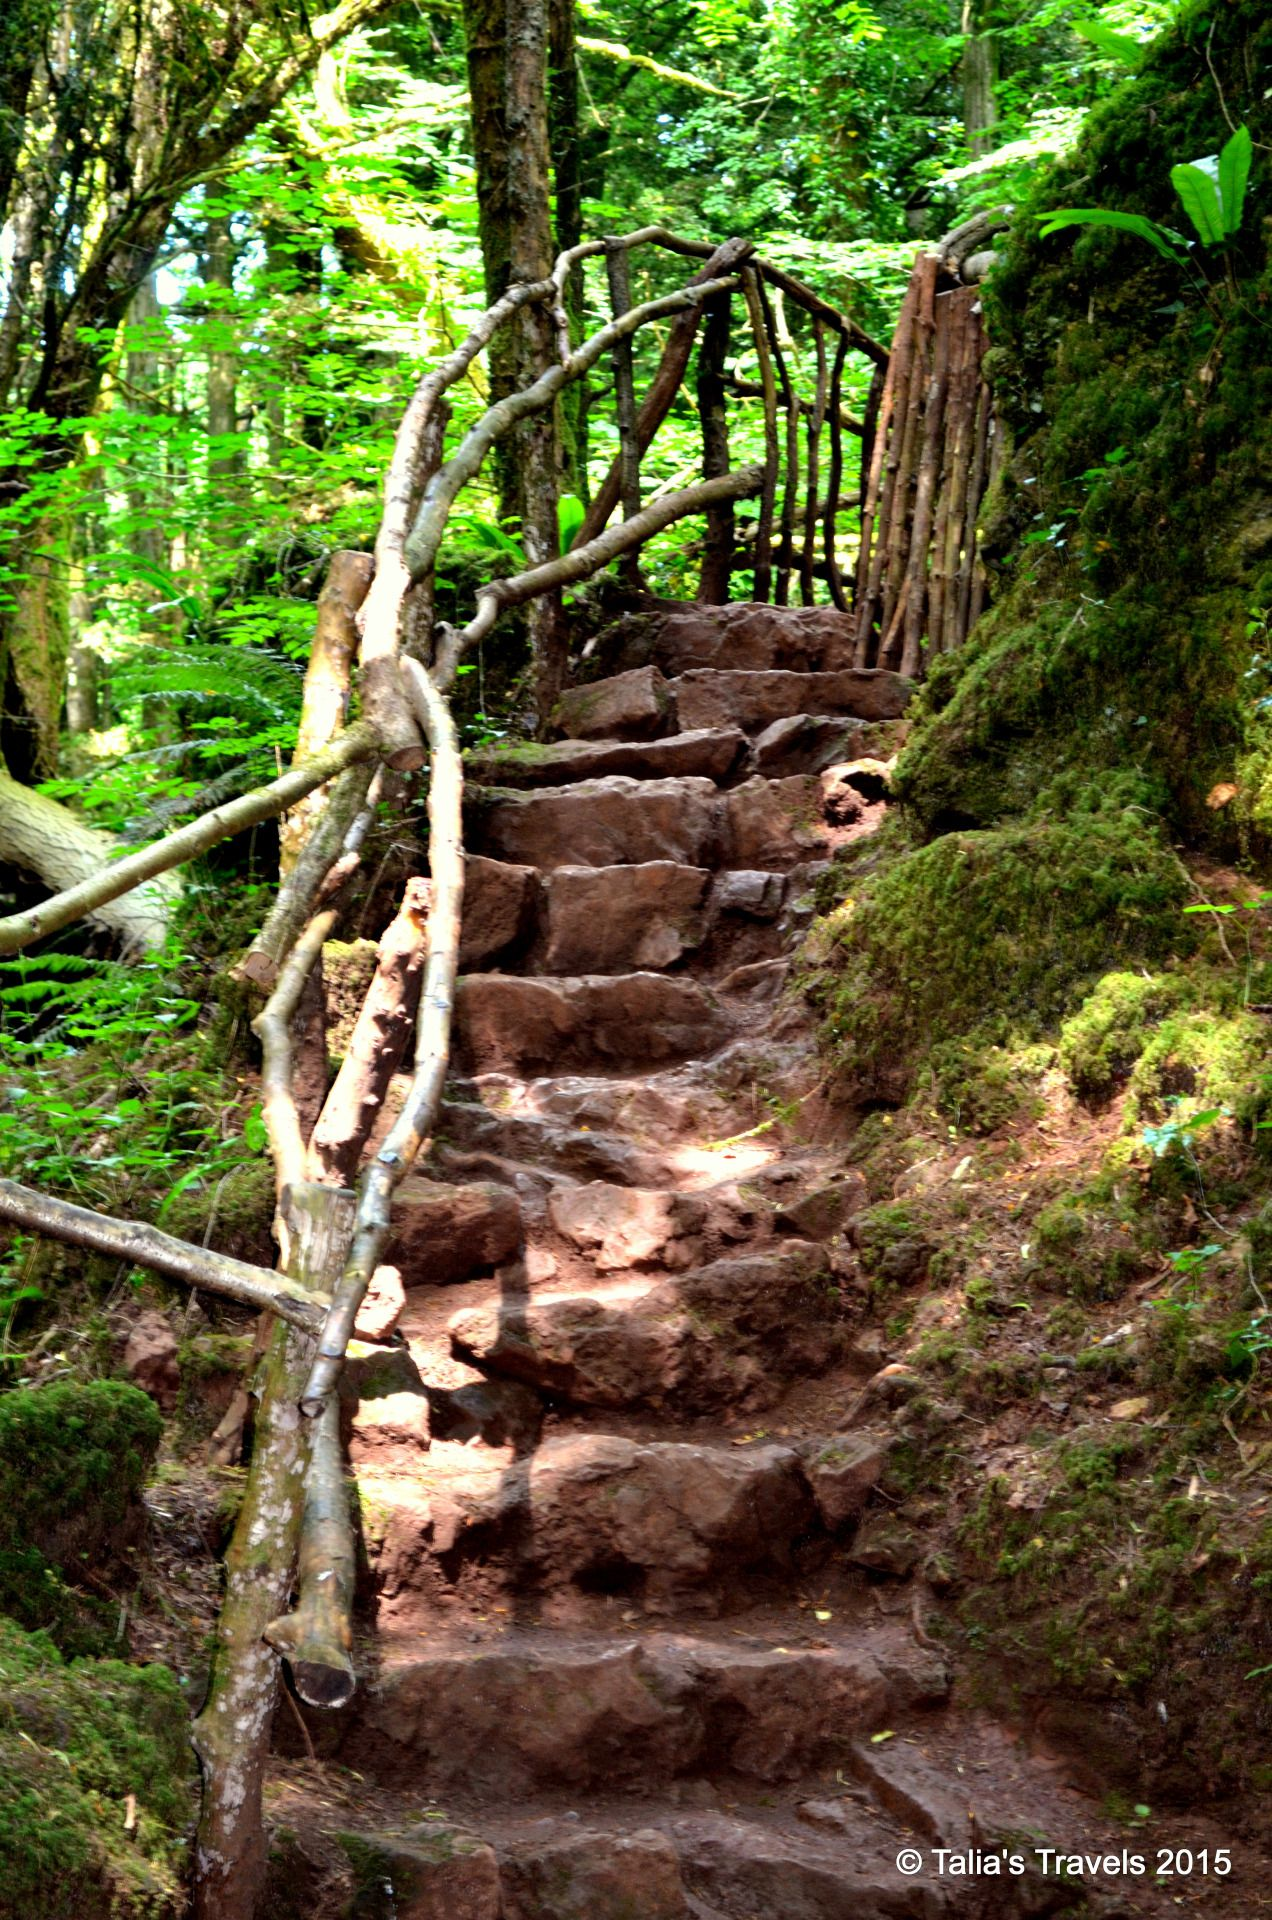 Talia's Travels | Puzzlewood, Forest of Dean, Gloucestershire, England